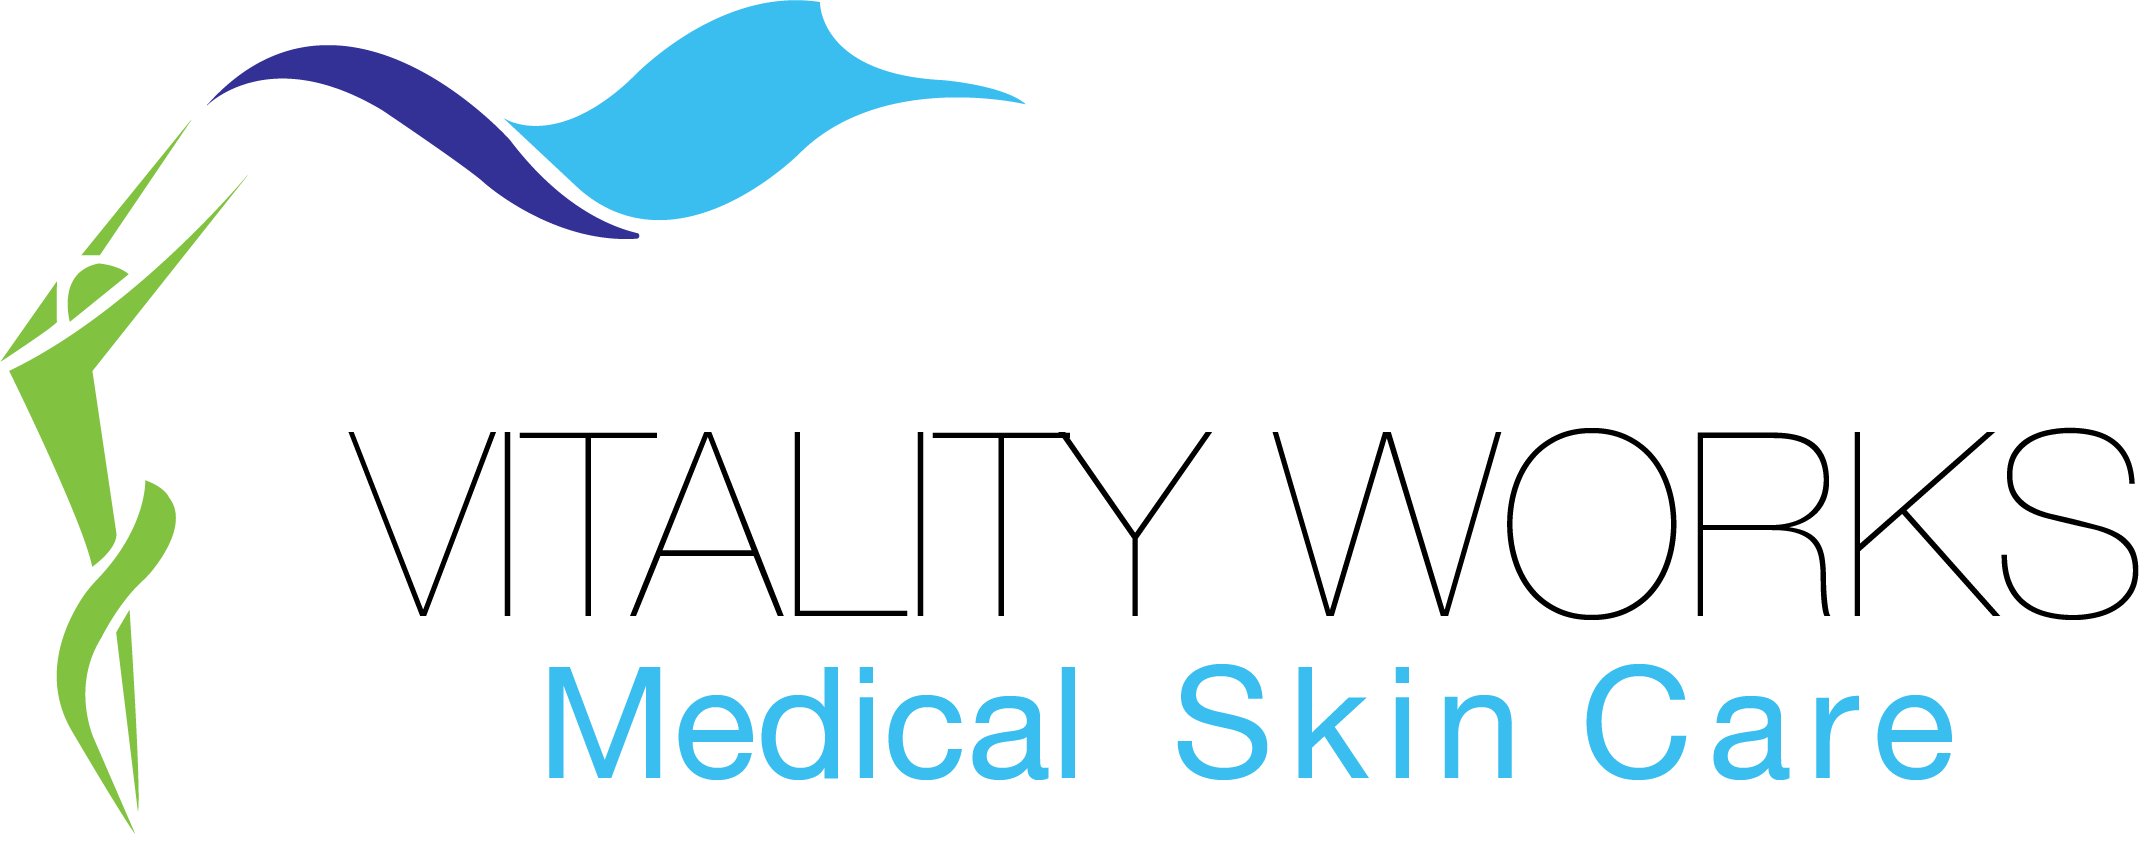 Vitality Works | Medical Skincare